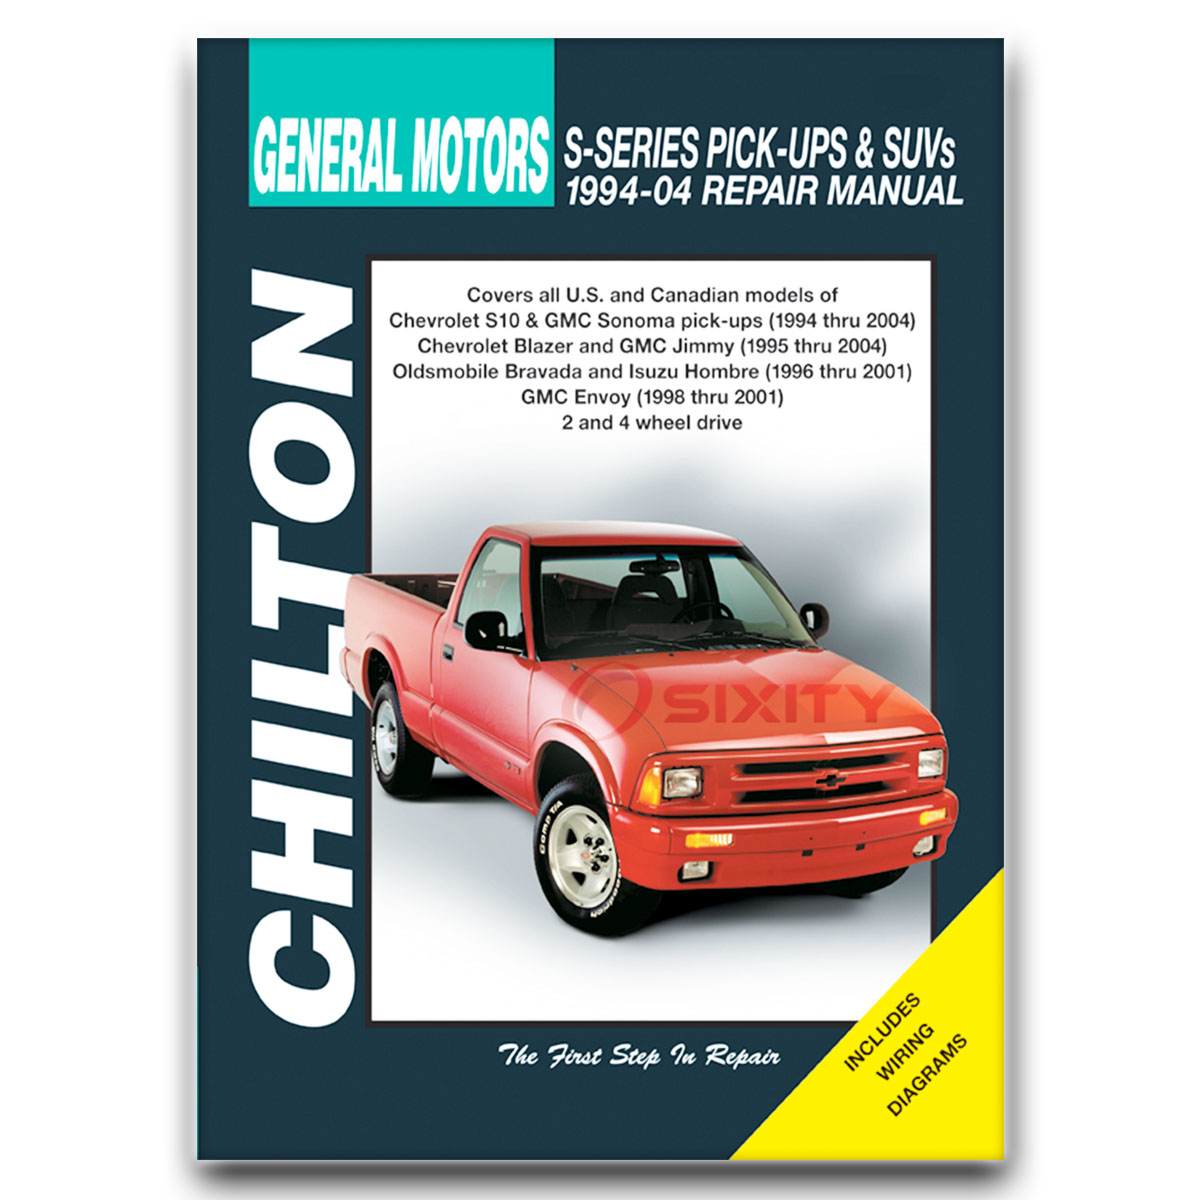 chevy s10 chilton repair manual base ss ls zr2 xtreme zr5 shop rh ebay com chevy s10 repair manual chevy s10 repair manual pdf